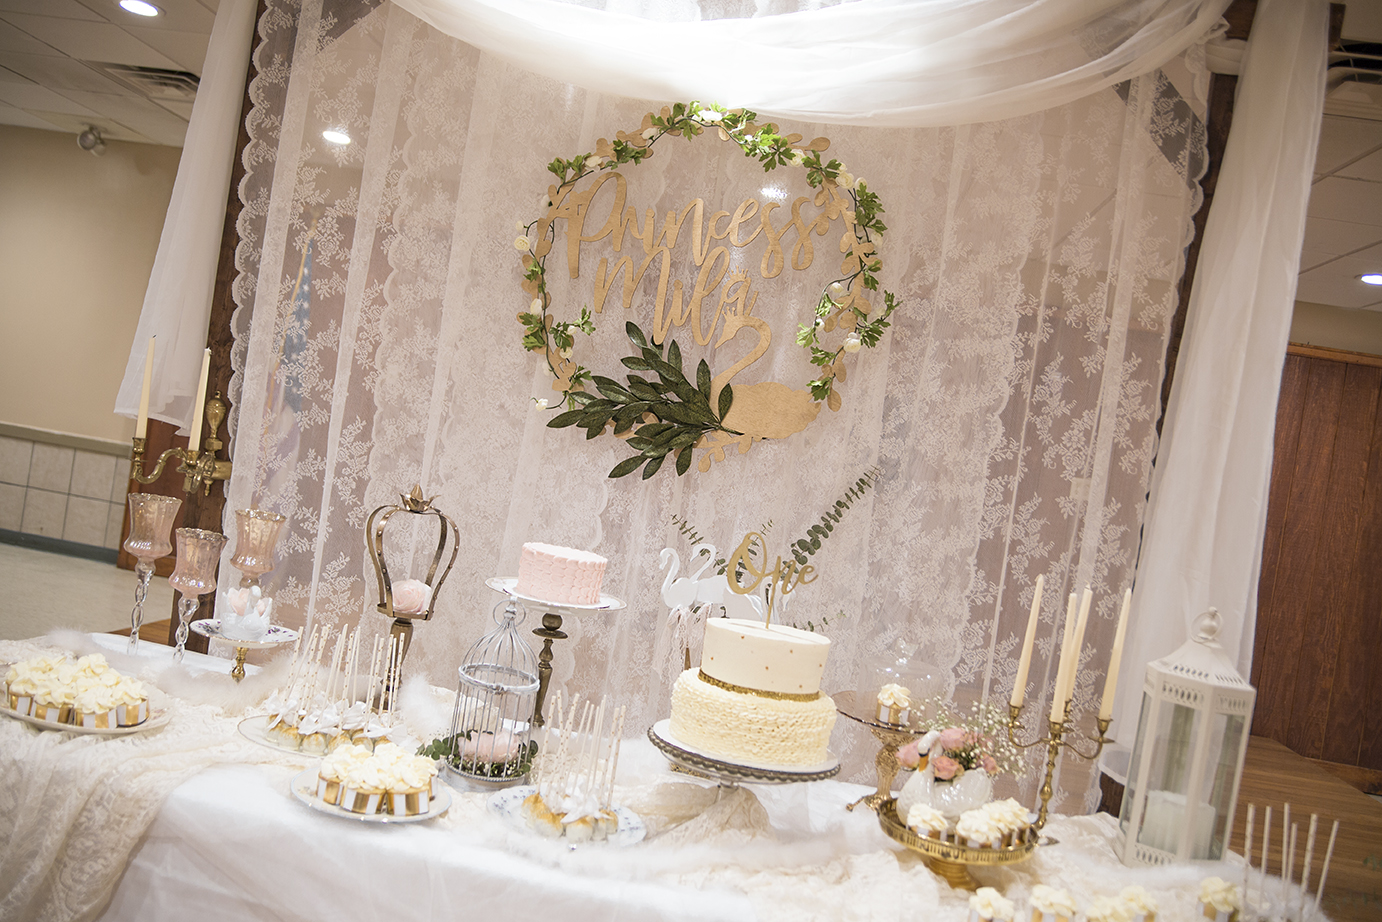 SWAN PRINCESS 1st Birthday - Complete styling